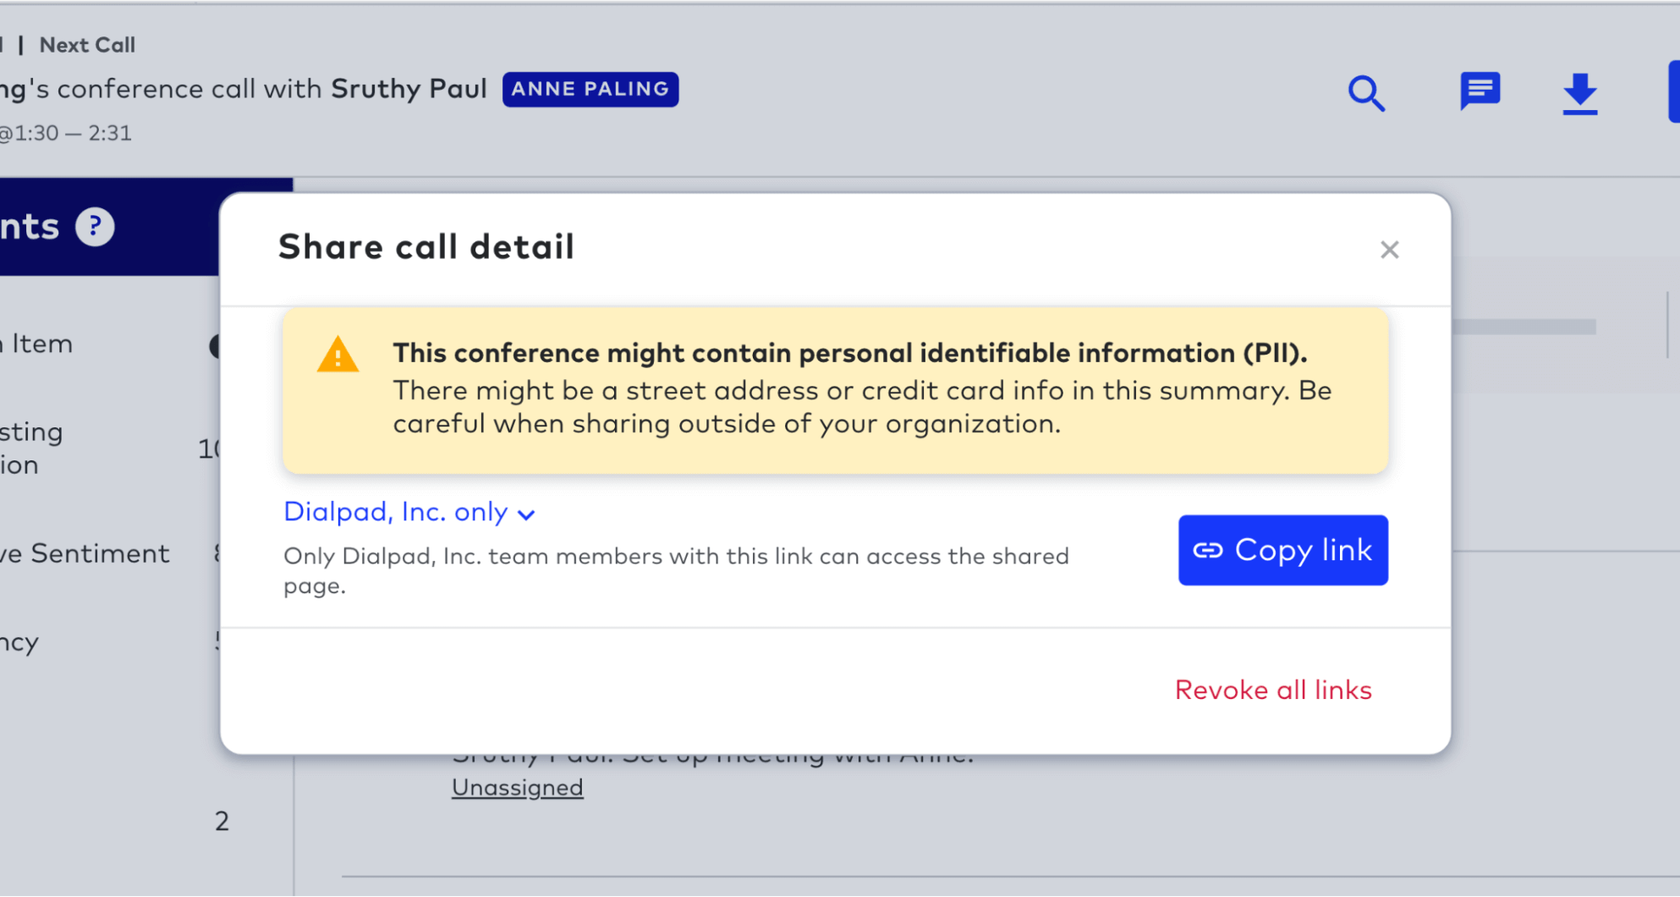 automatic detection of personal information in dialpad contact center